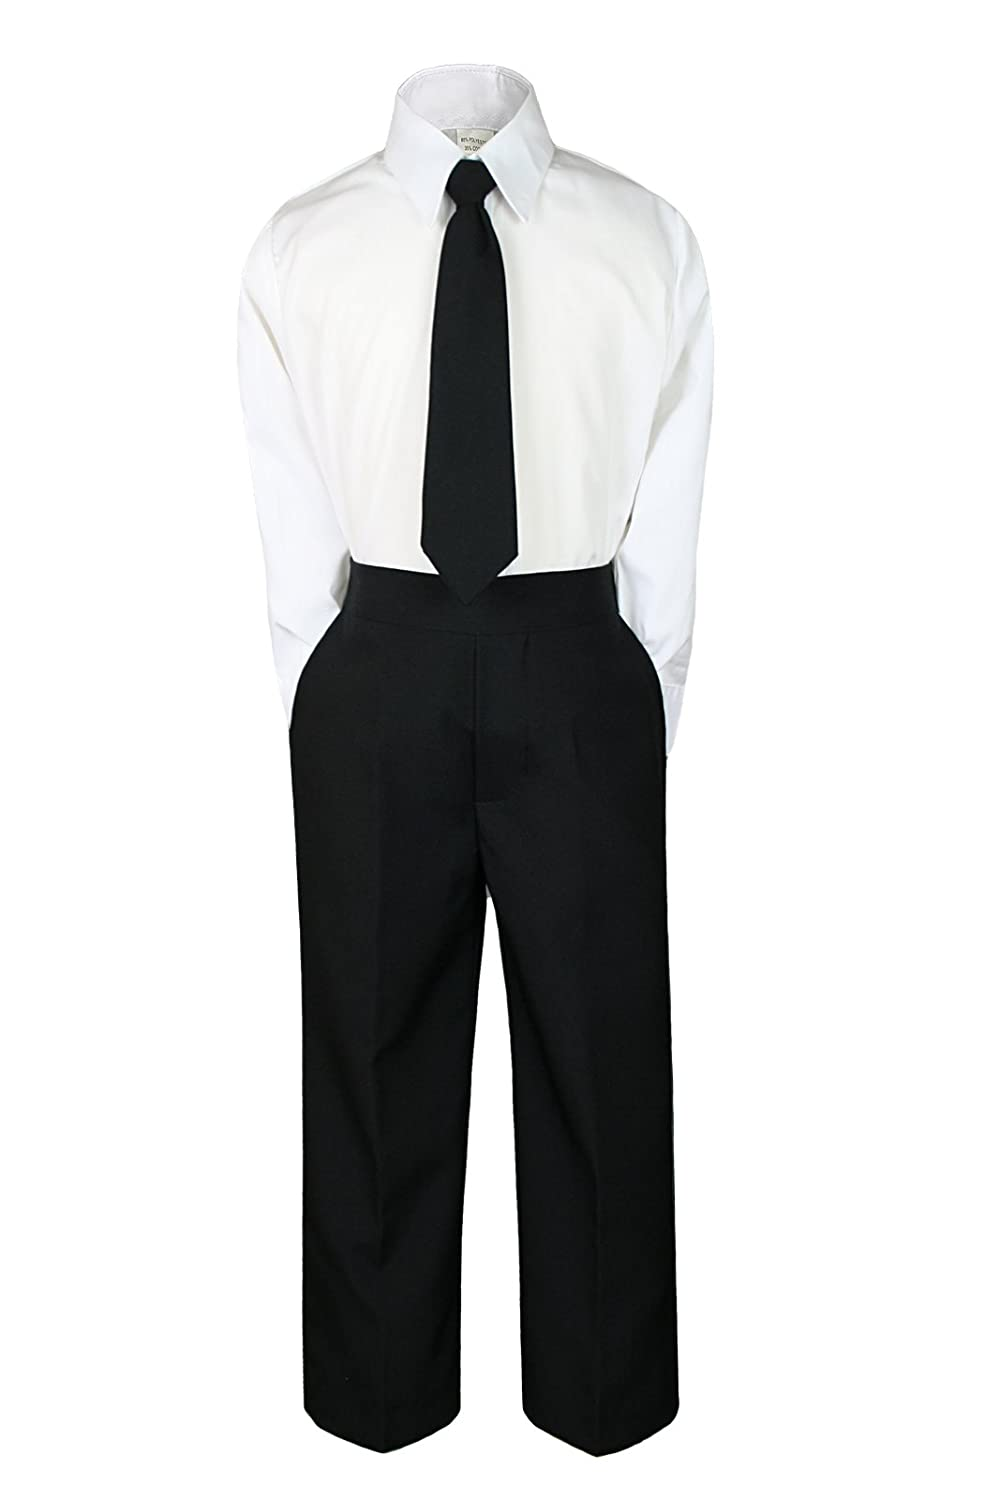 5 3pc Formal Wedding Boys Black Necktie Sets Suits Outfits Baby to Teen S-7